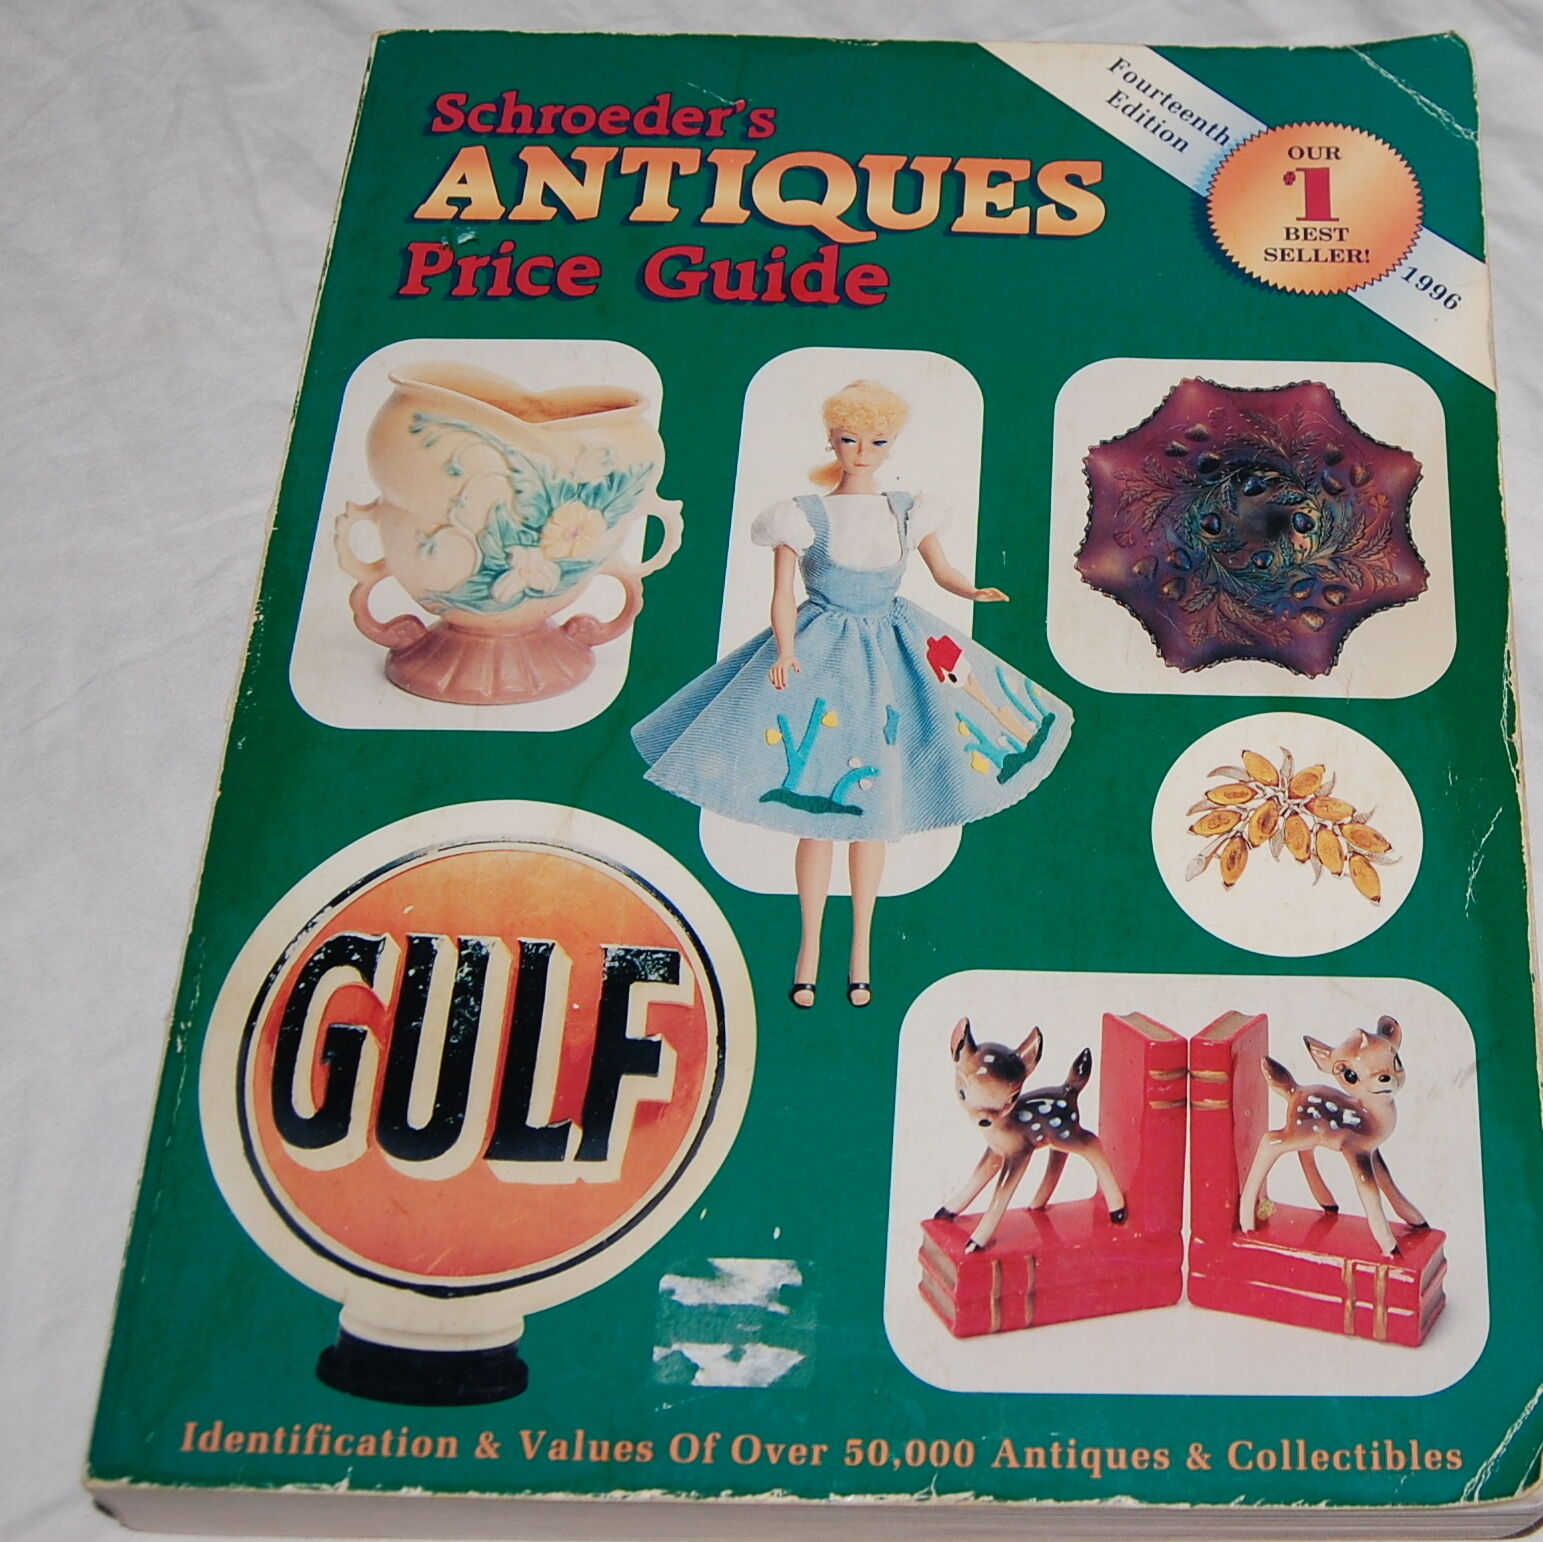 Schroeders Antiques Price Guide Sharon Huxford 1996